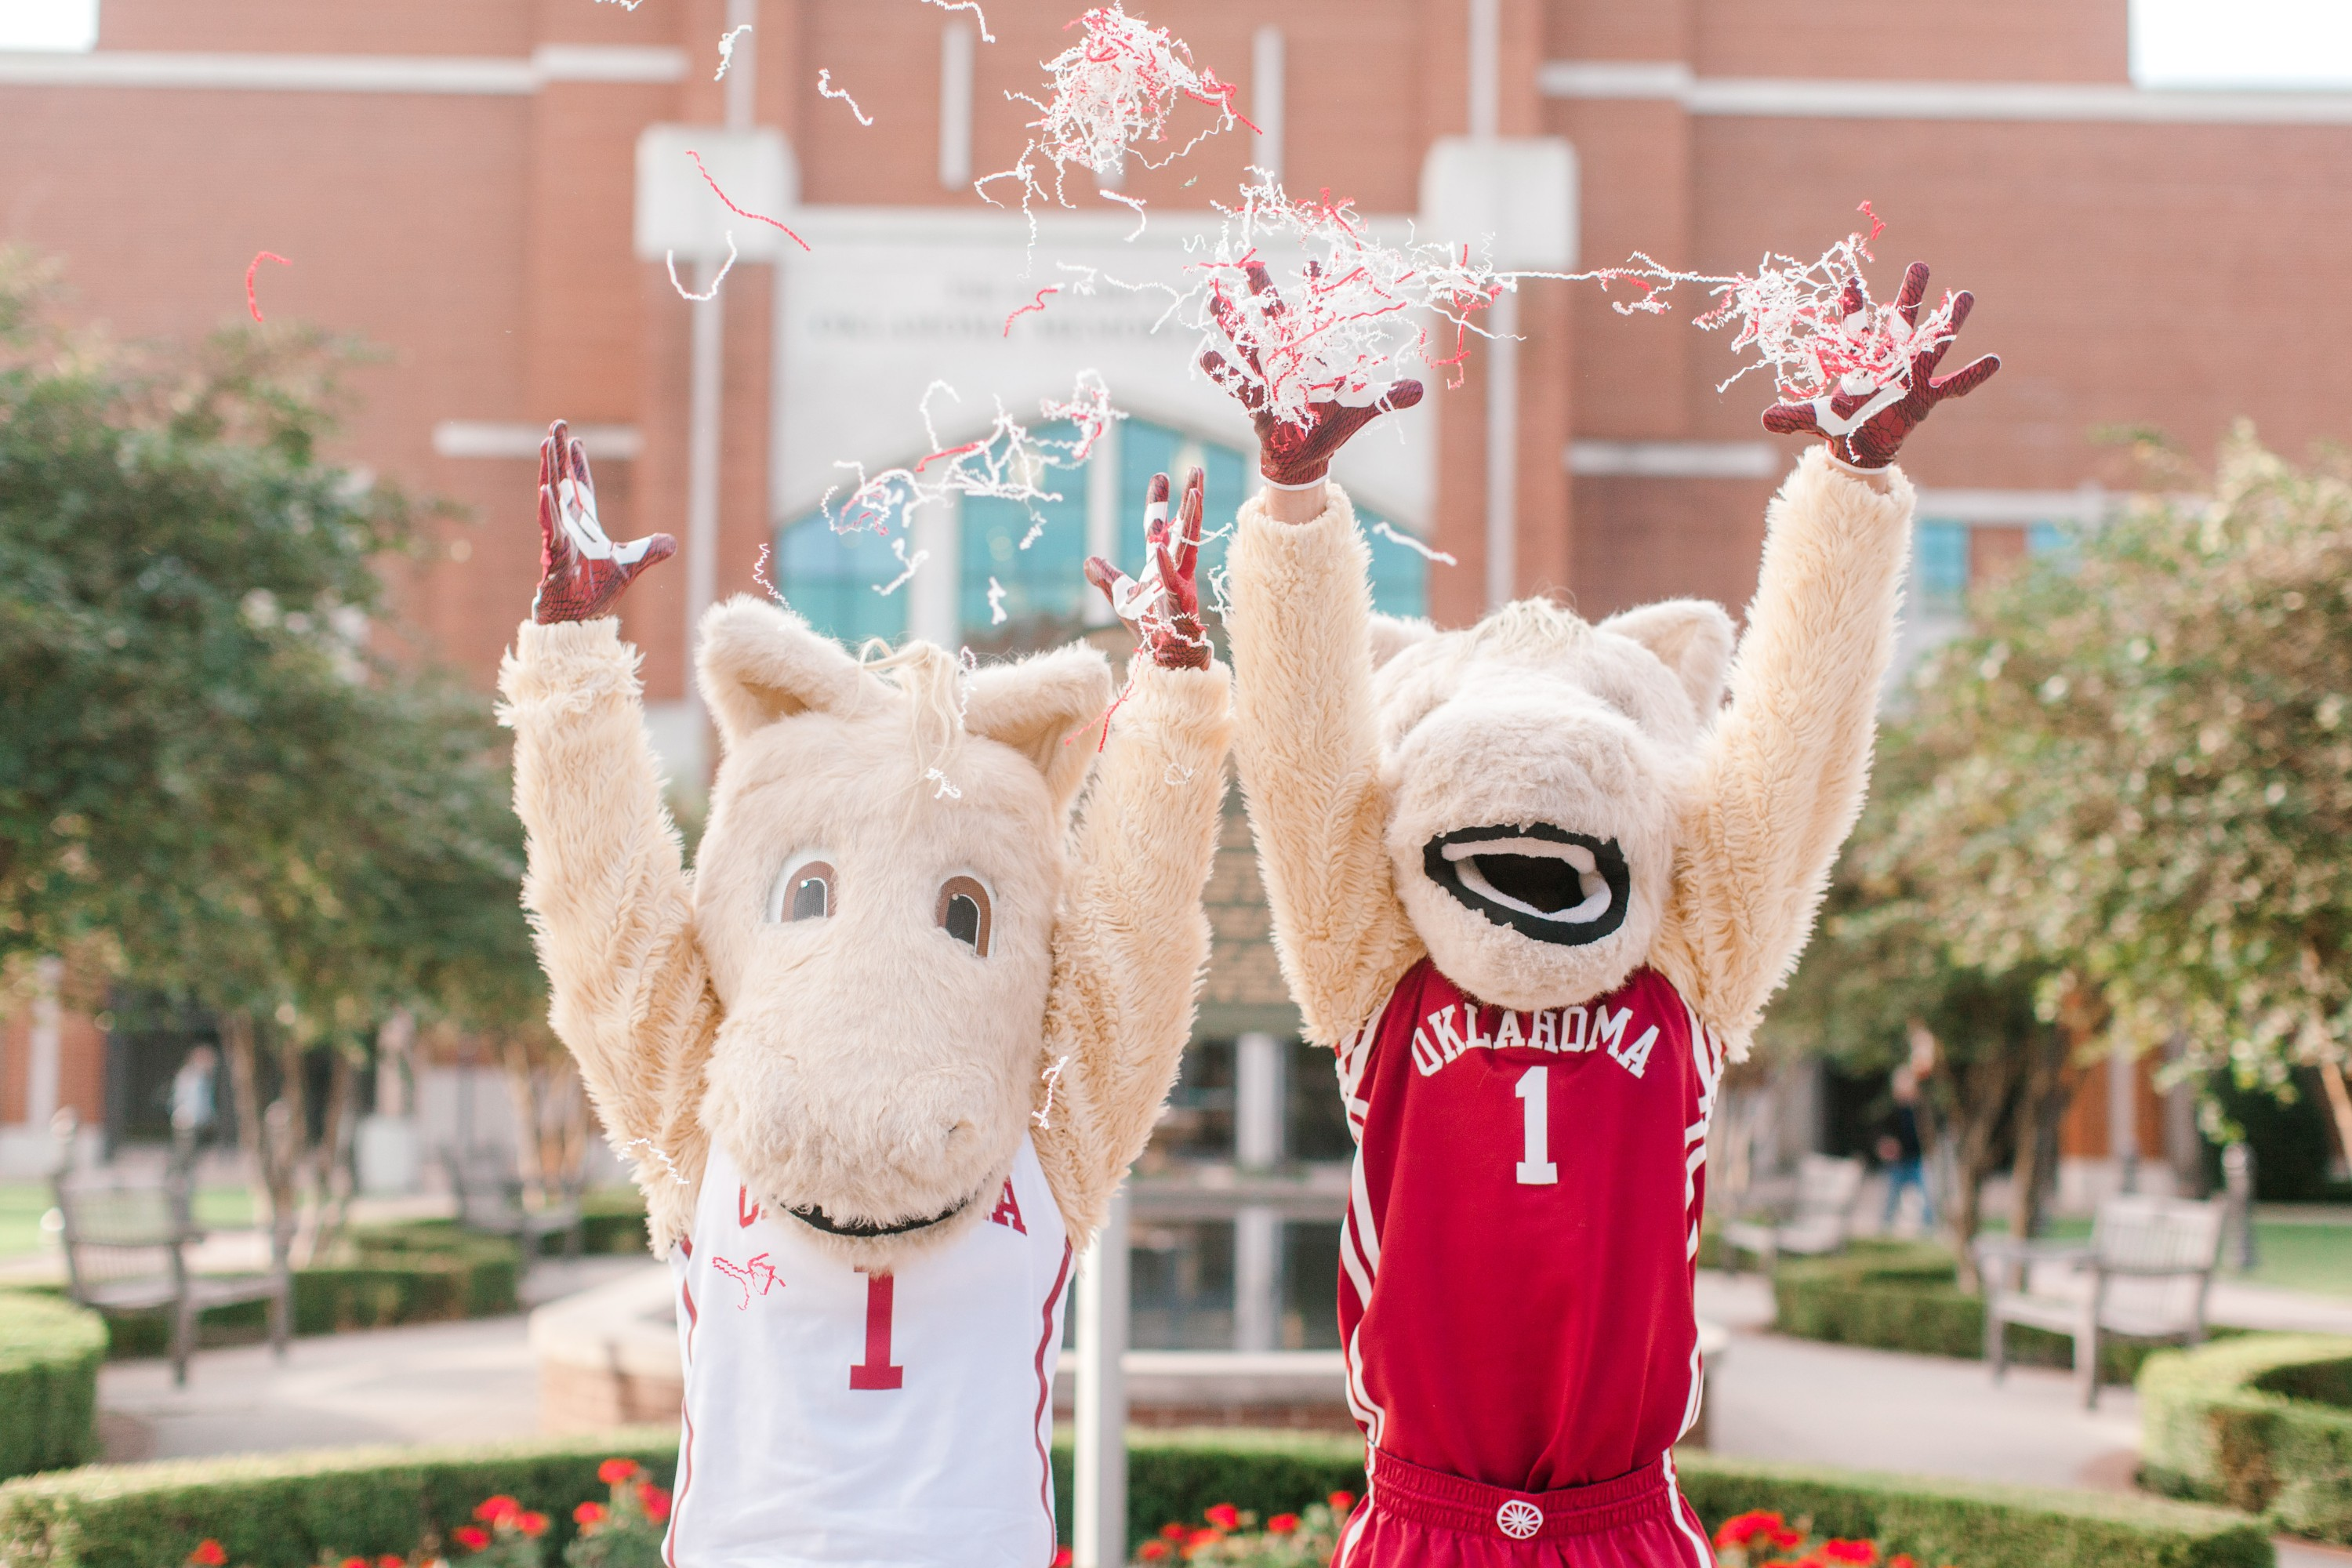 Boomer & Sooner with Admissions Box